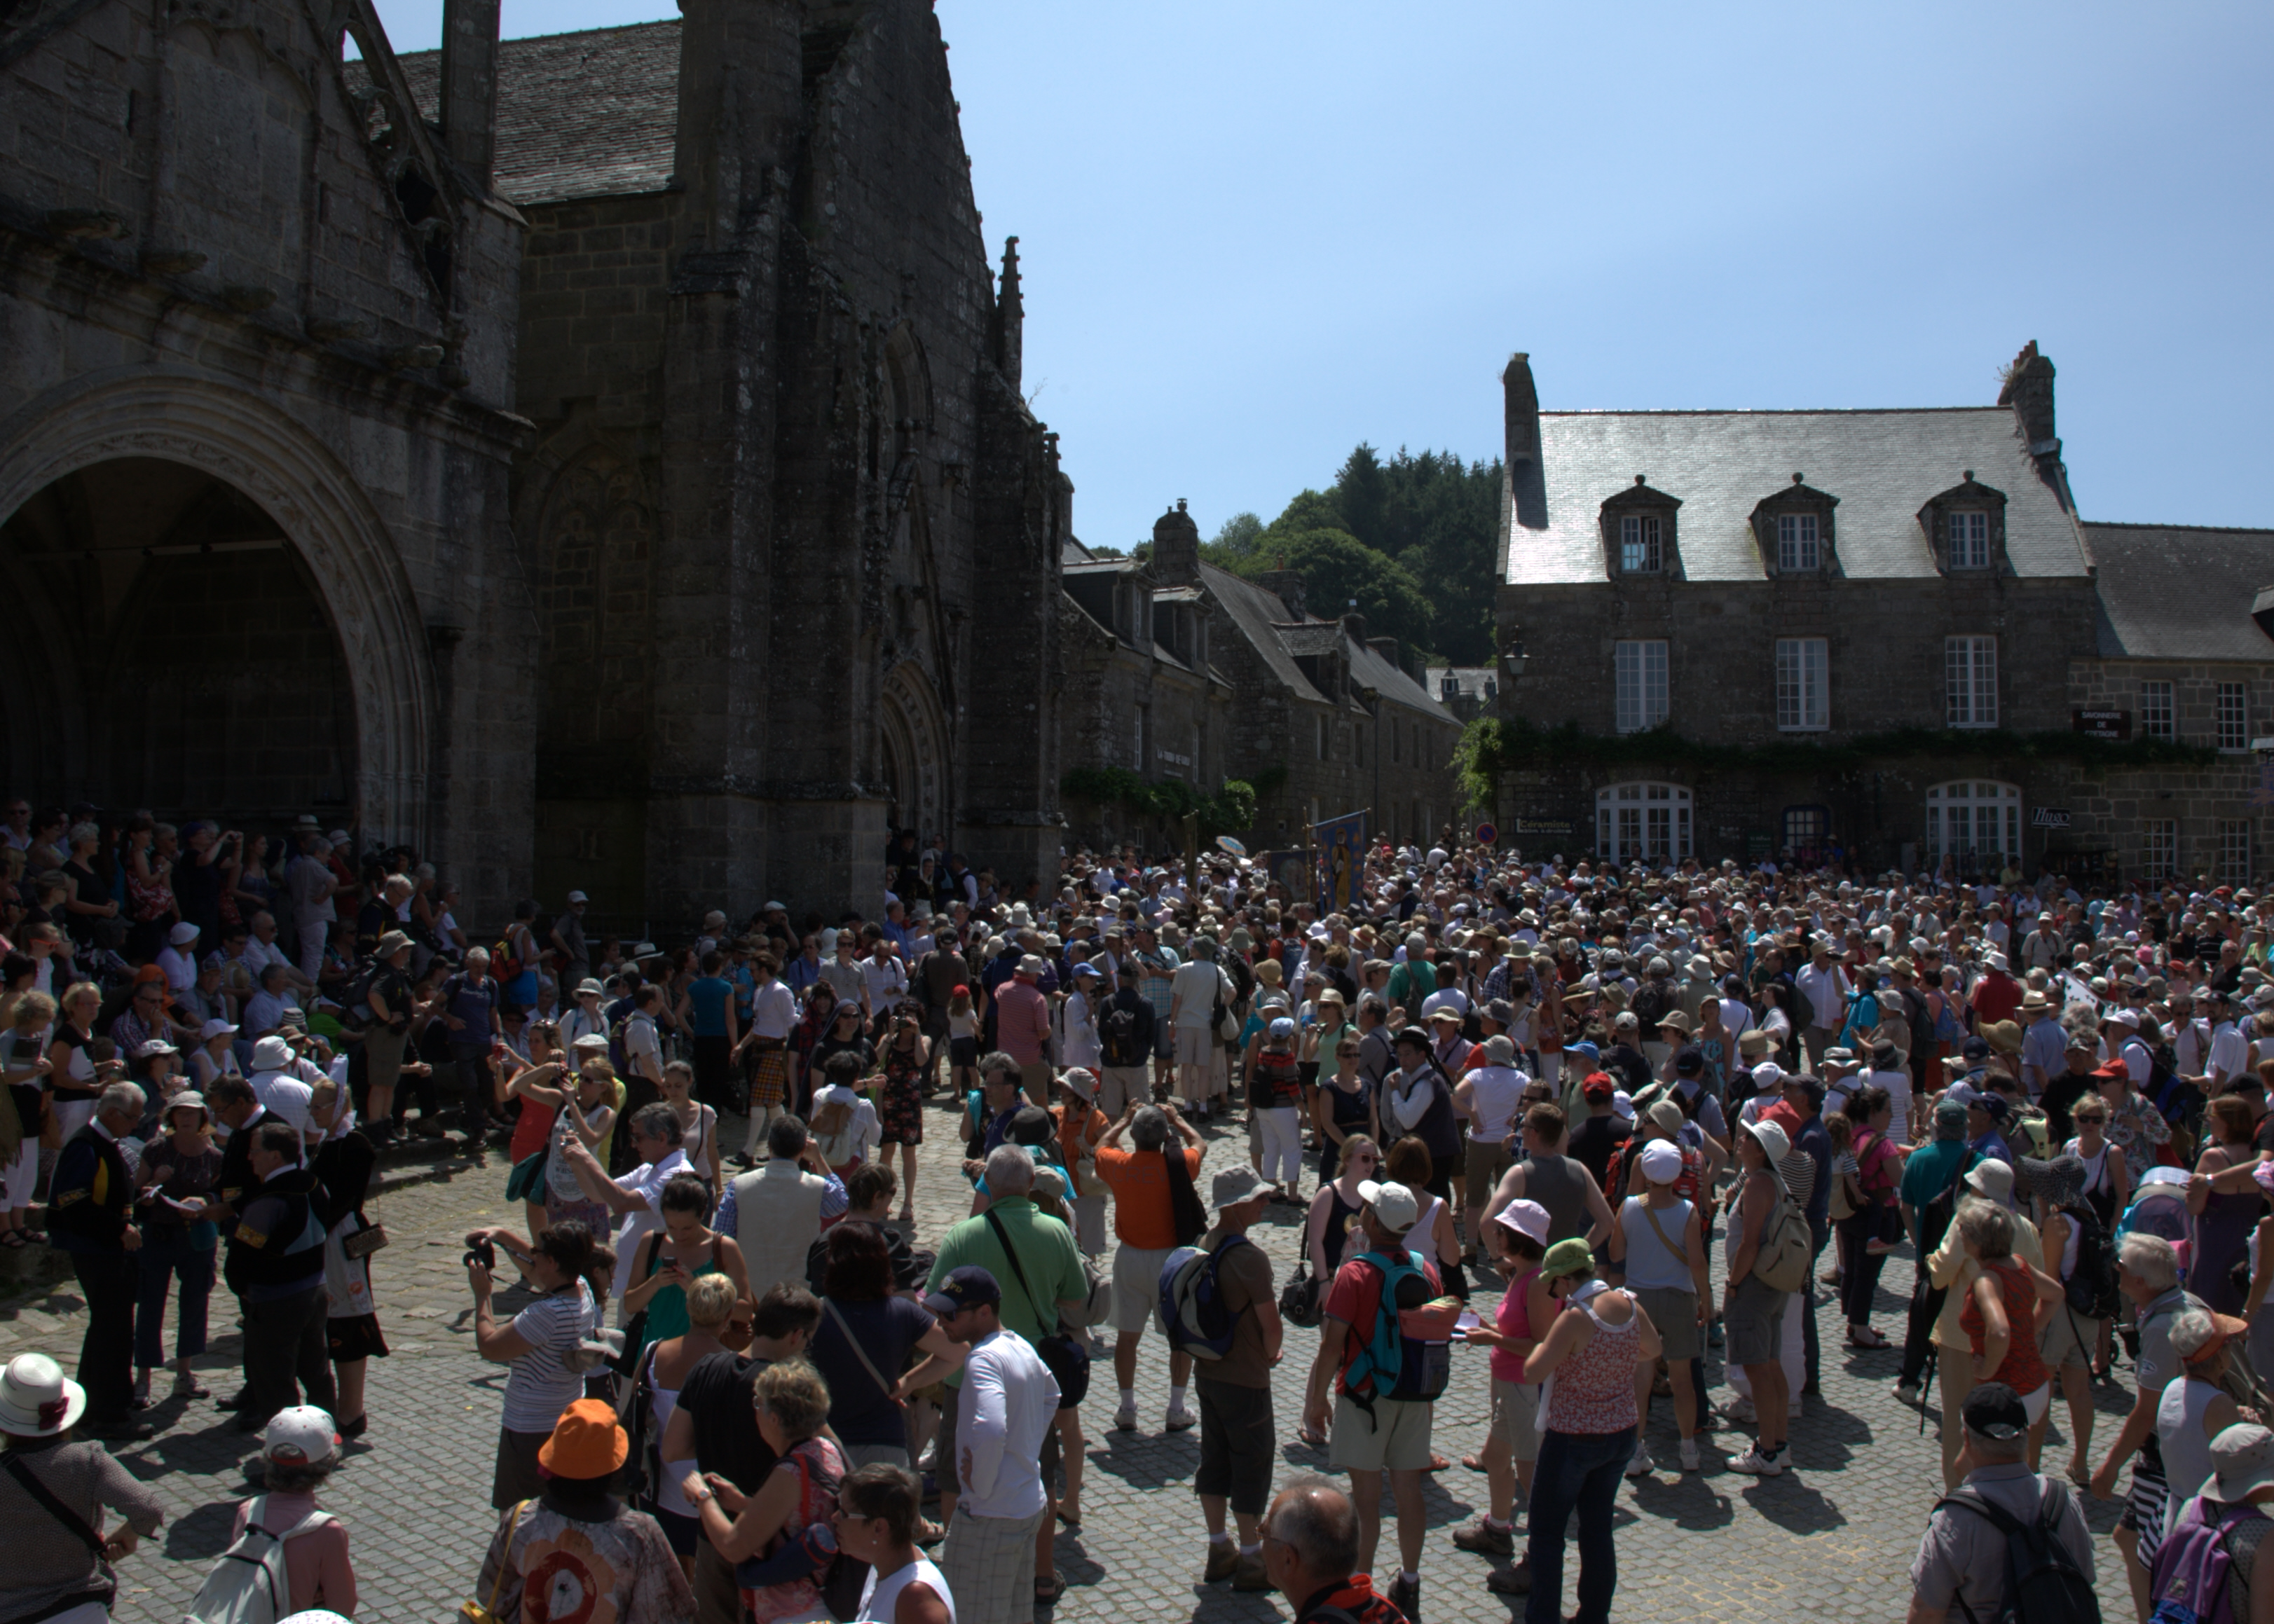 Everyone gathers for the start of the Procession